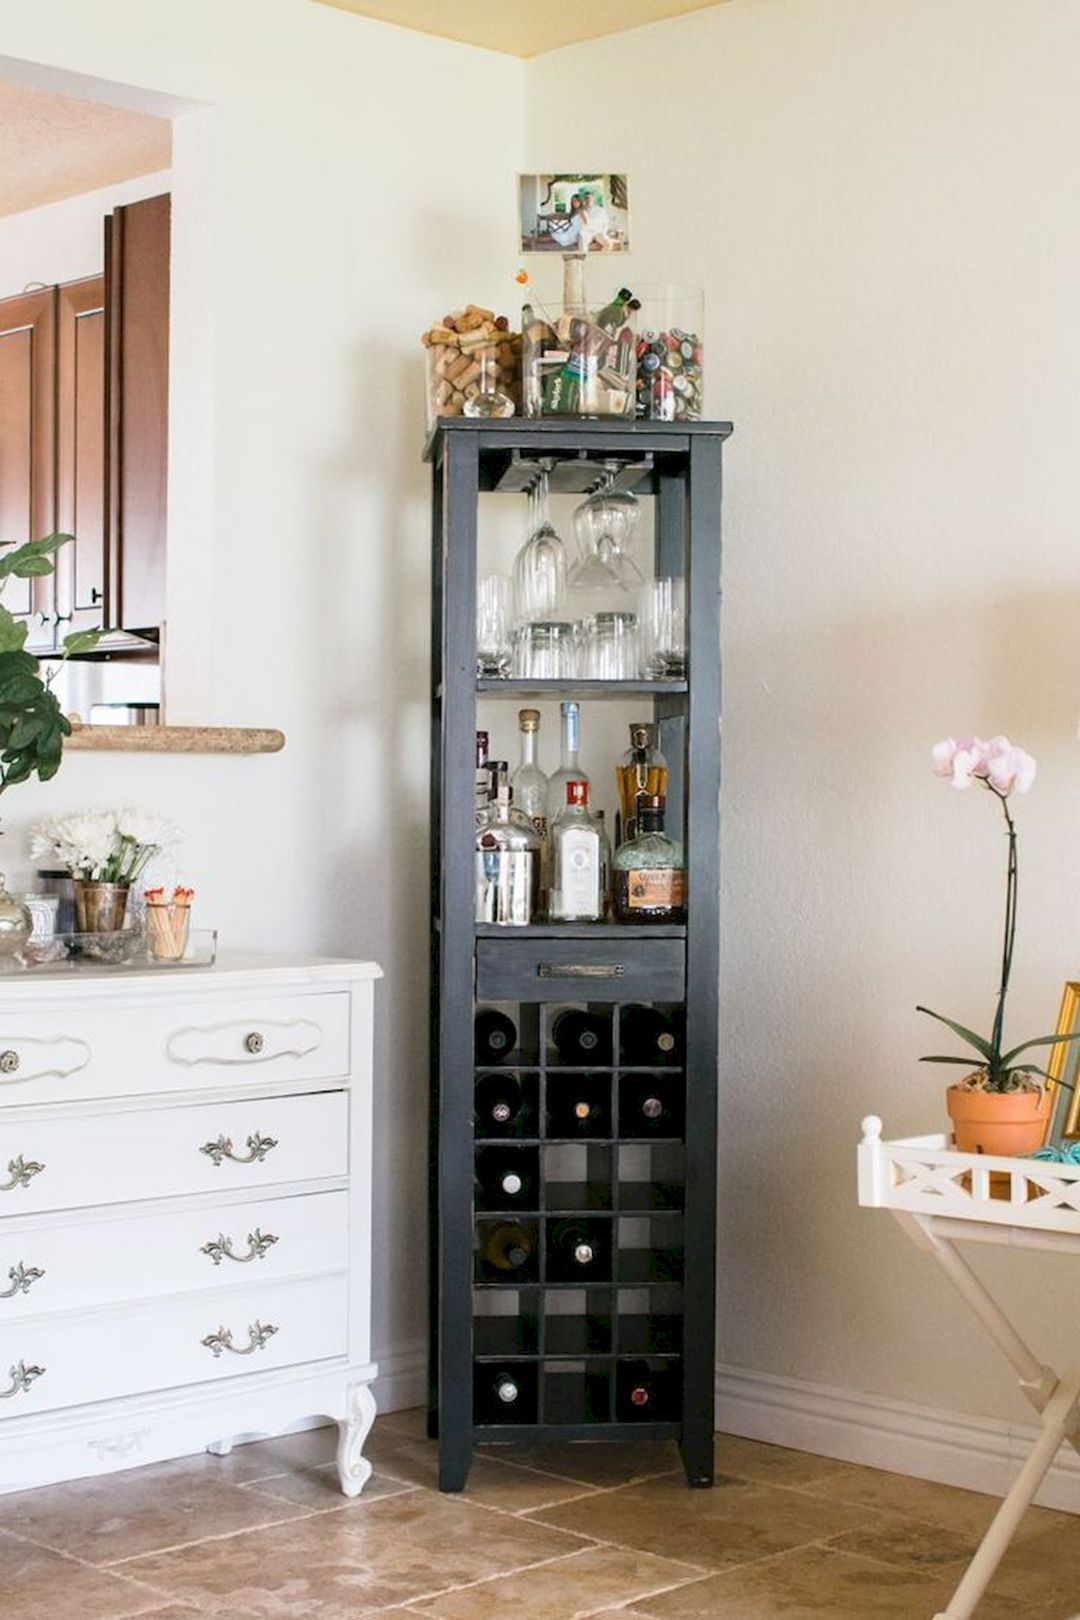 20 Gorgeous Small Corner Wine Cabinet Ideas For Home Look More Beautiful Bar Cabinet Furniture Bar Furniture Bars For Home